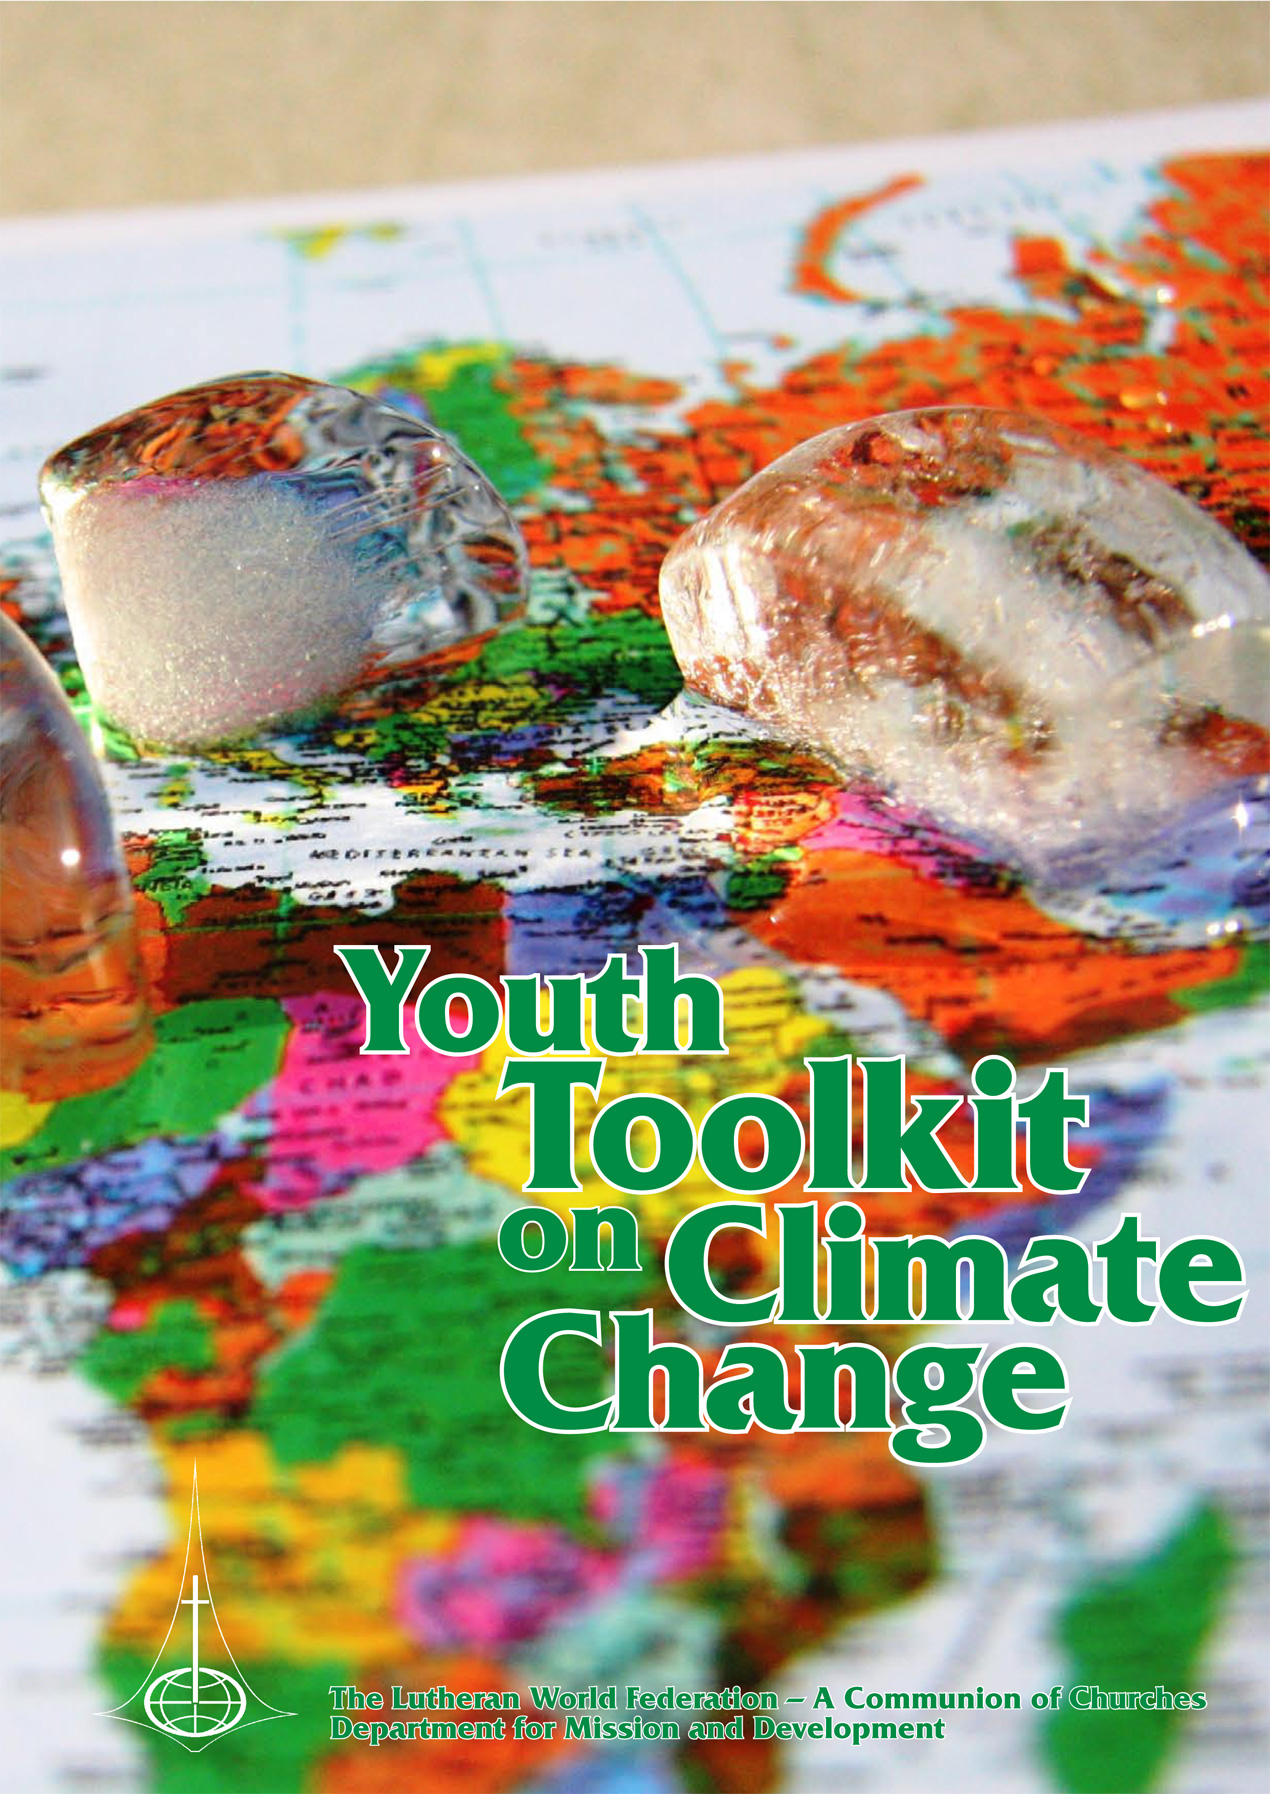 Youth Toolkit on Climate Change by DM